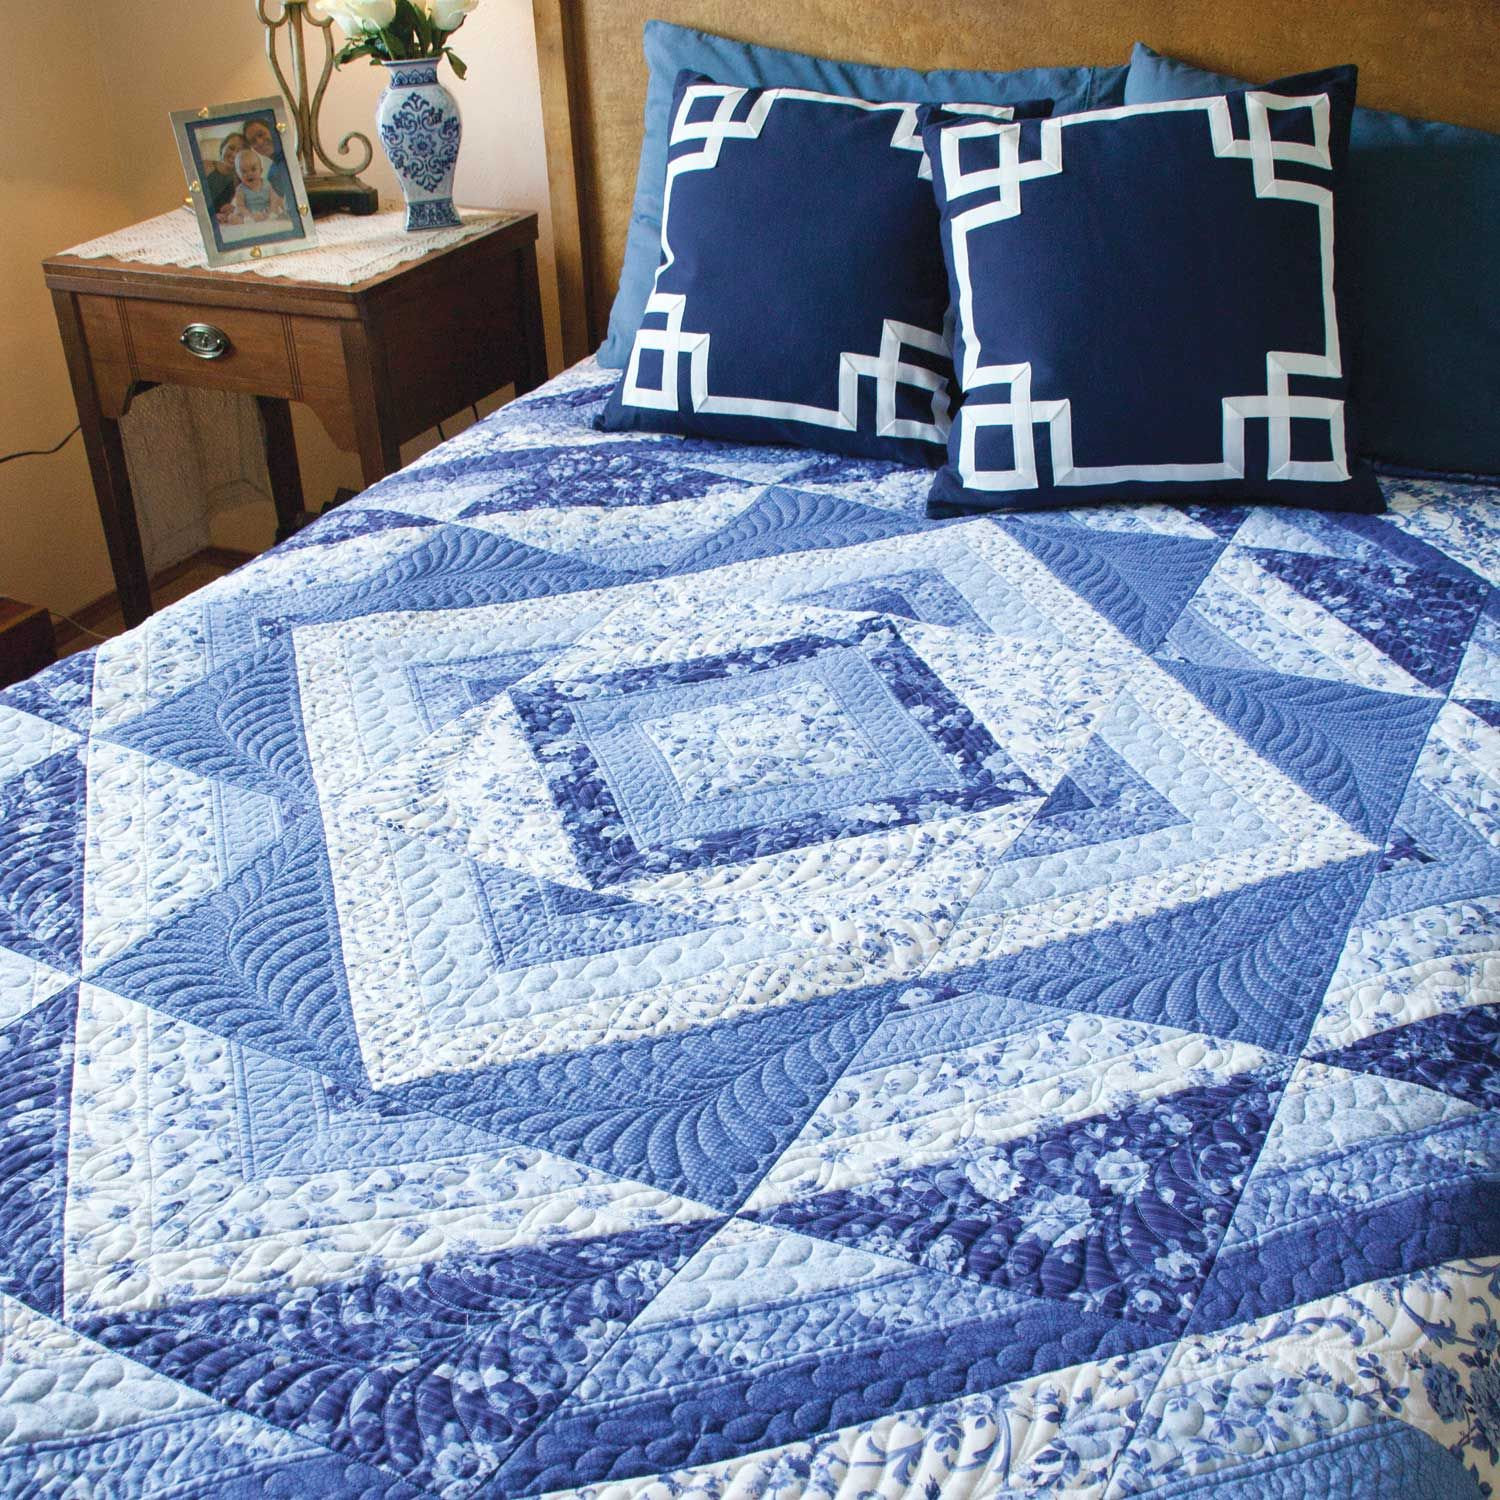 About Mccall S Quilting A Division Of Quilting Daily Bed Quilt Patterns King Size Quilt Queen Size Quilt